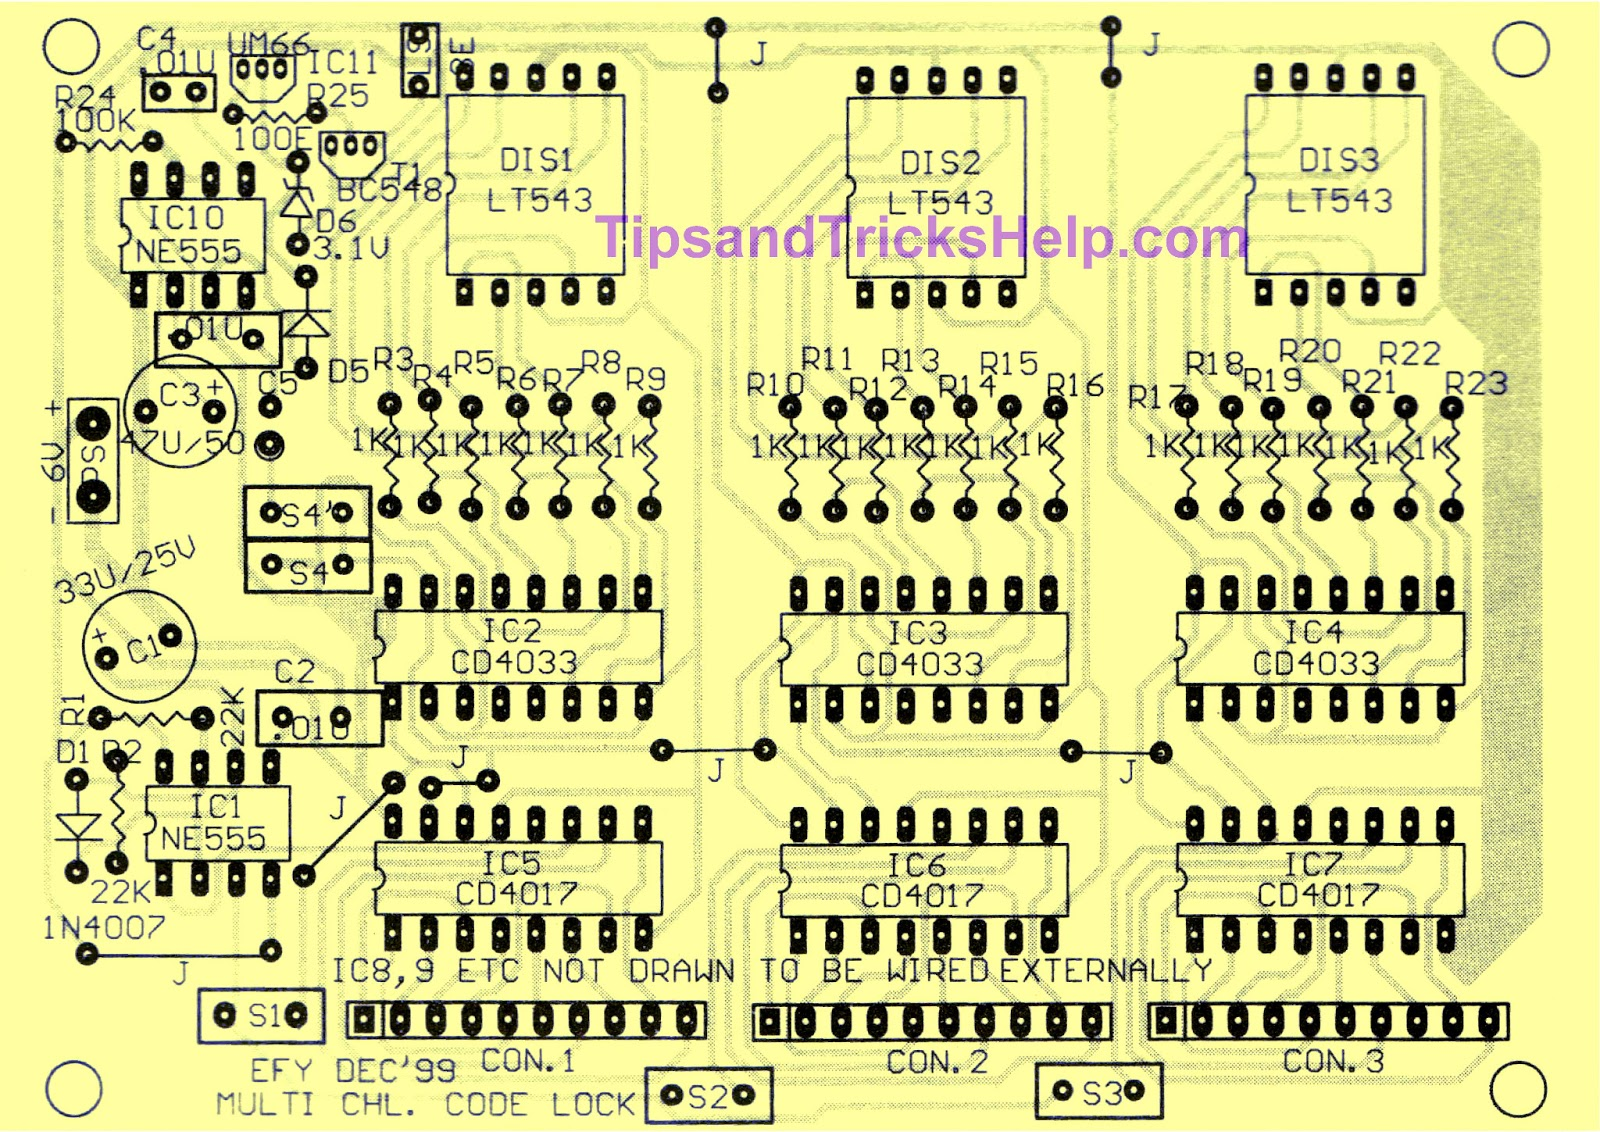 Tips And Tricks Help Simple Key Code Lock Switch Circuit Using Ic4017 Fig 3